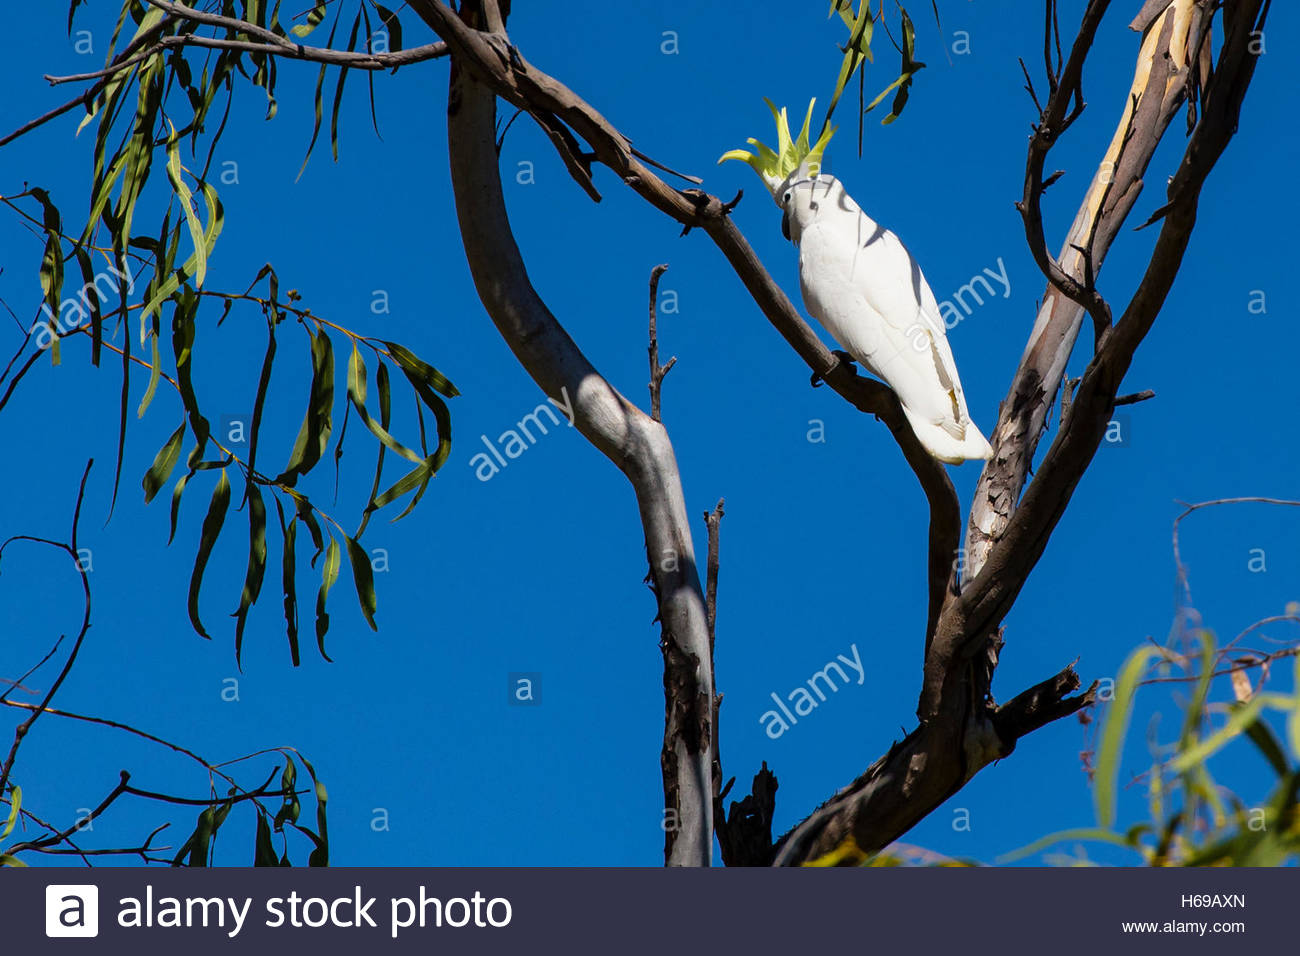 A Sulpher-crested Cockatoo (Cacatua galerita) perched on a branch near Ord River in the Kimberley Region of Northwest - Stock Image